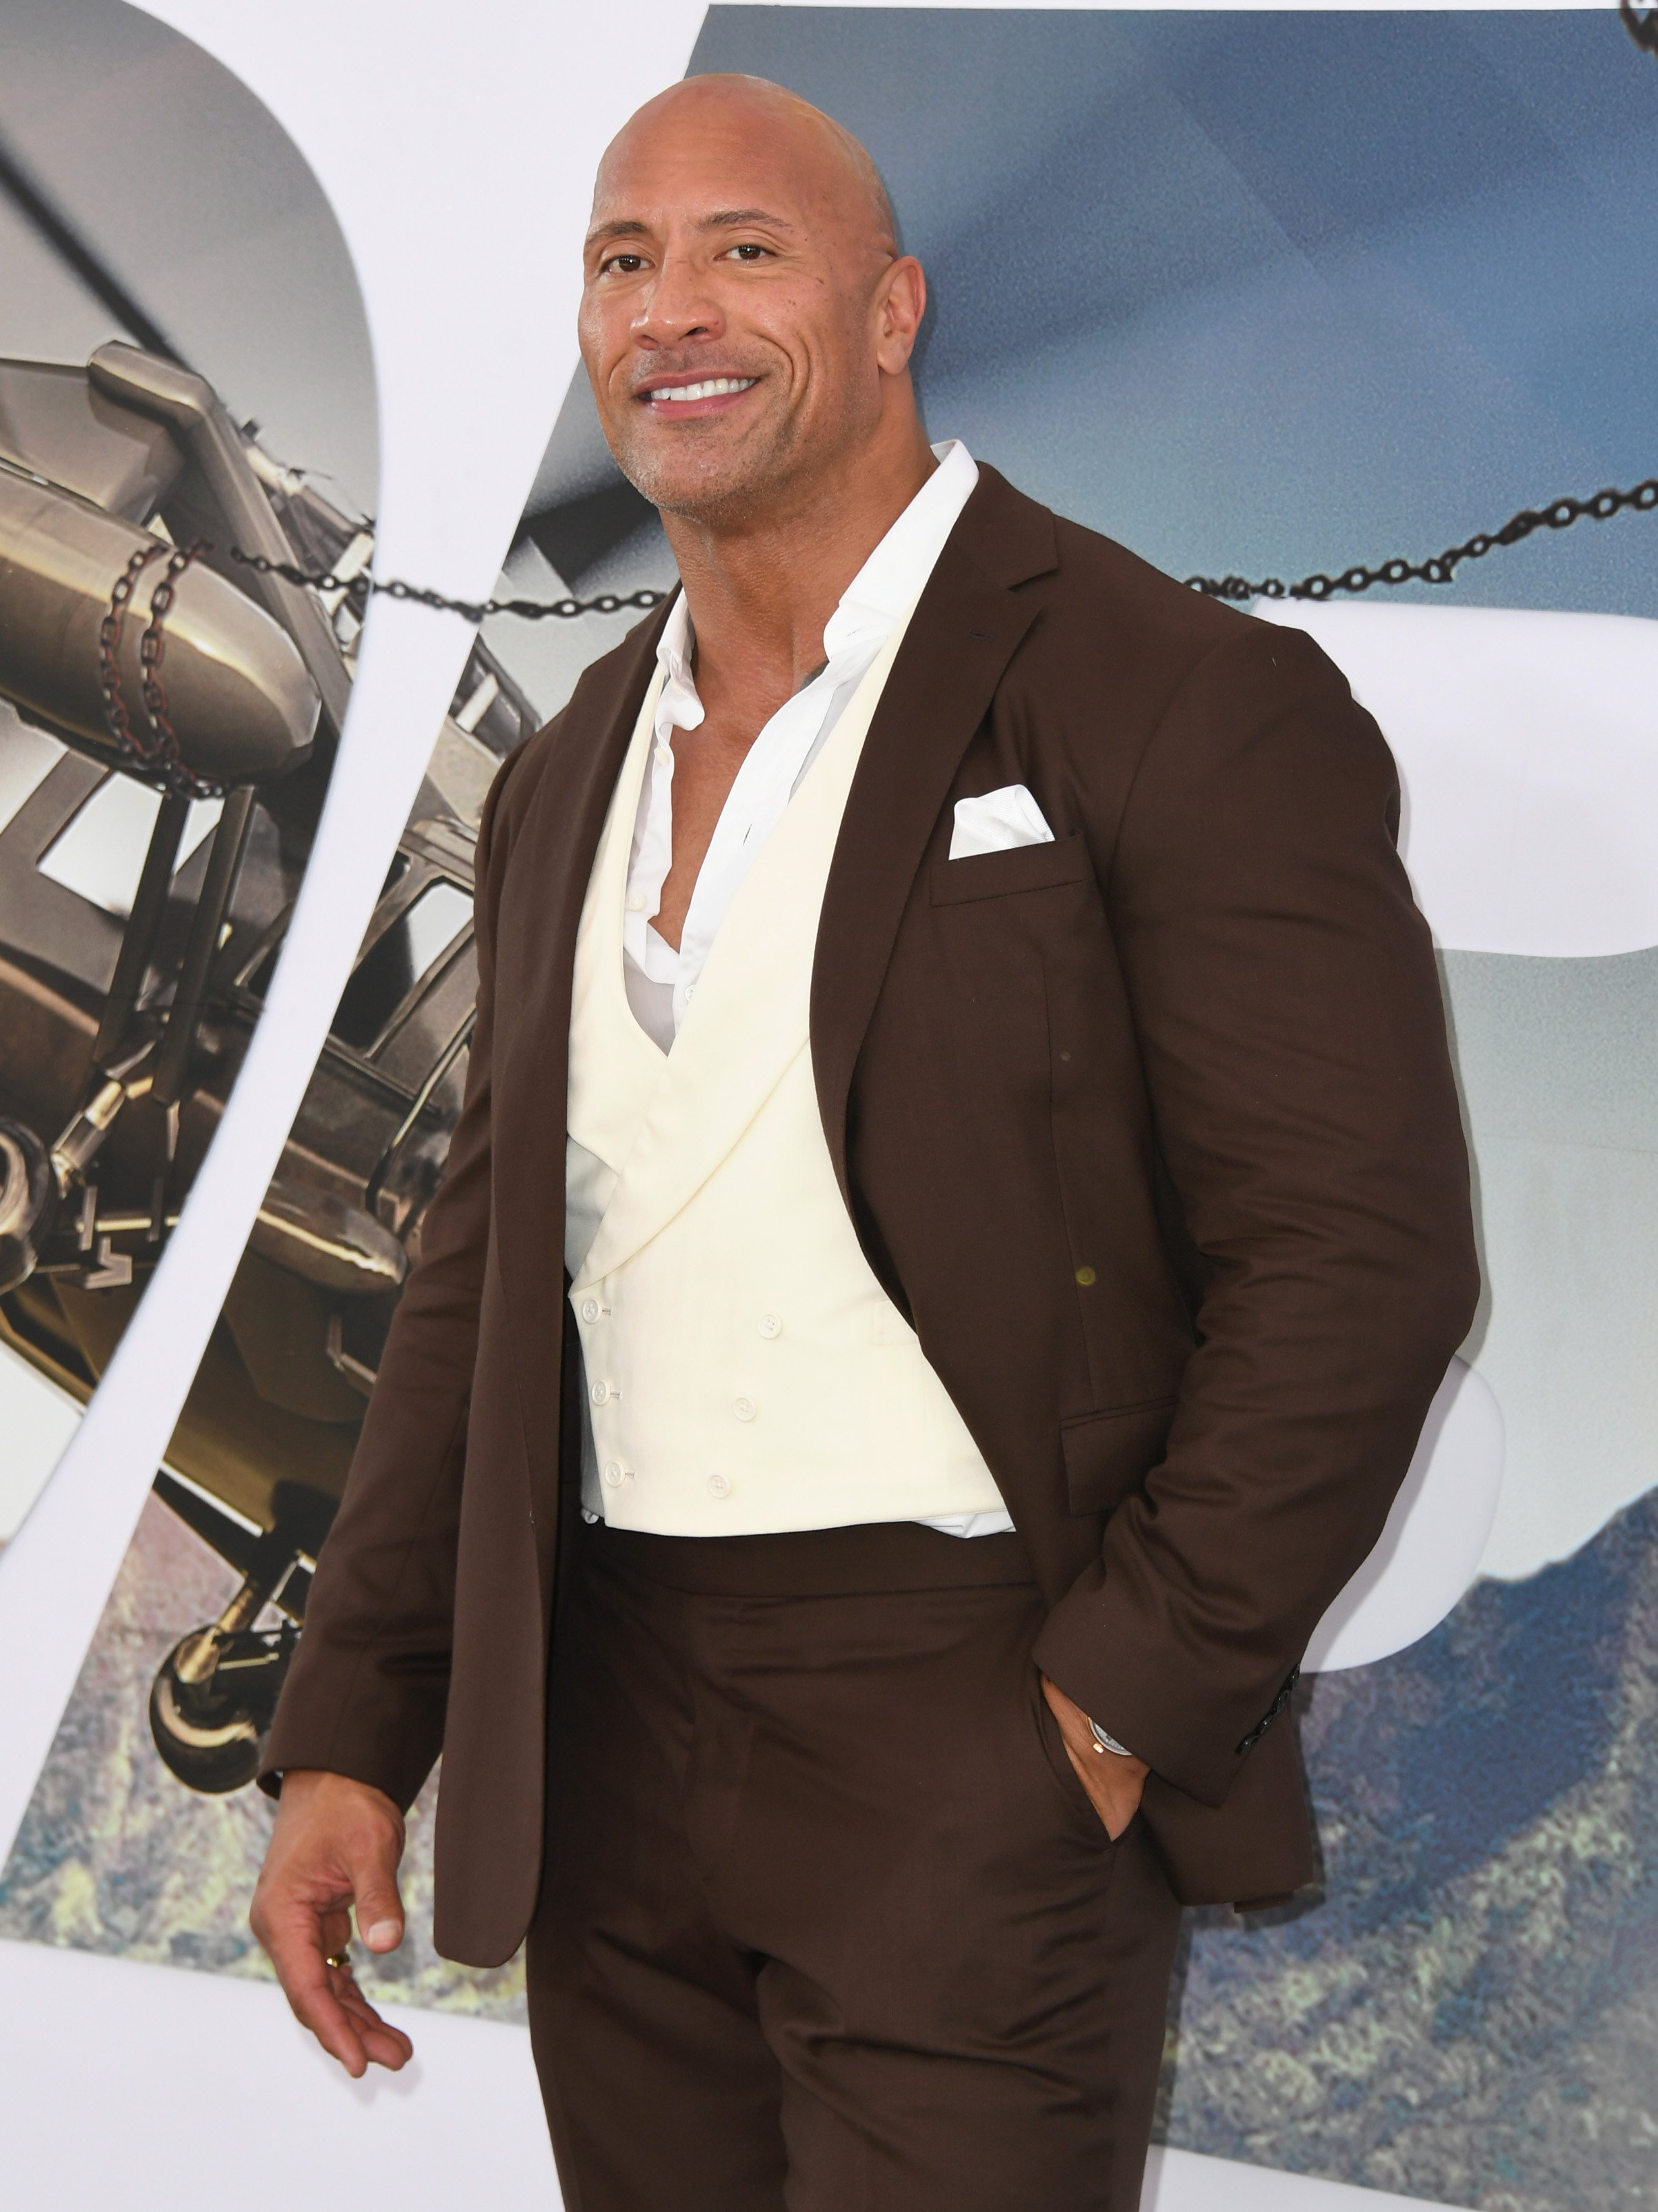 """Dwayne Johnson attends the Premiere Of Universal Pictures' """"Fast & Furious Presents: Hobbs & Shaw"""" at Dolby Theatre on July 13, 2019, in Hollywood, California. 